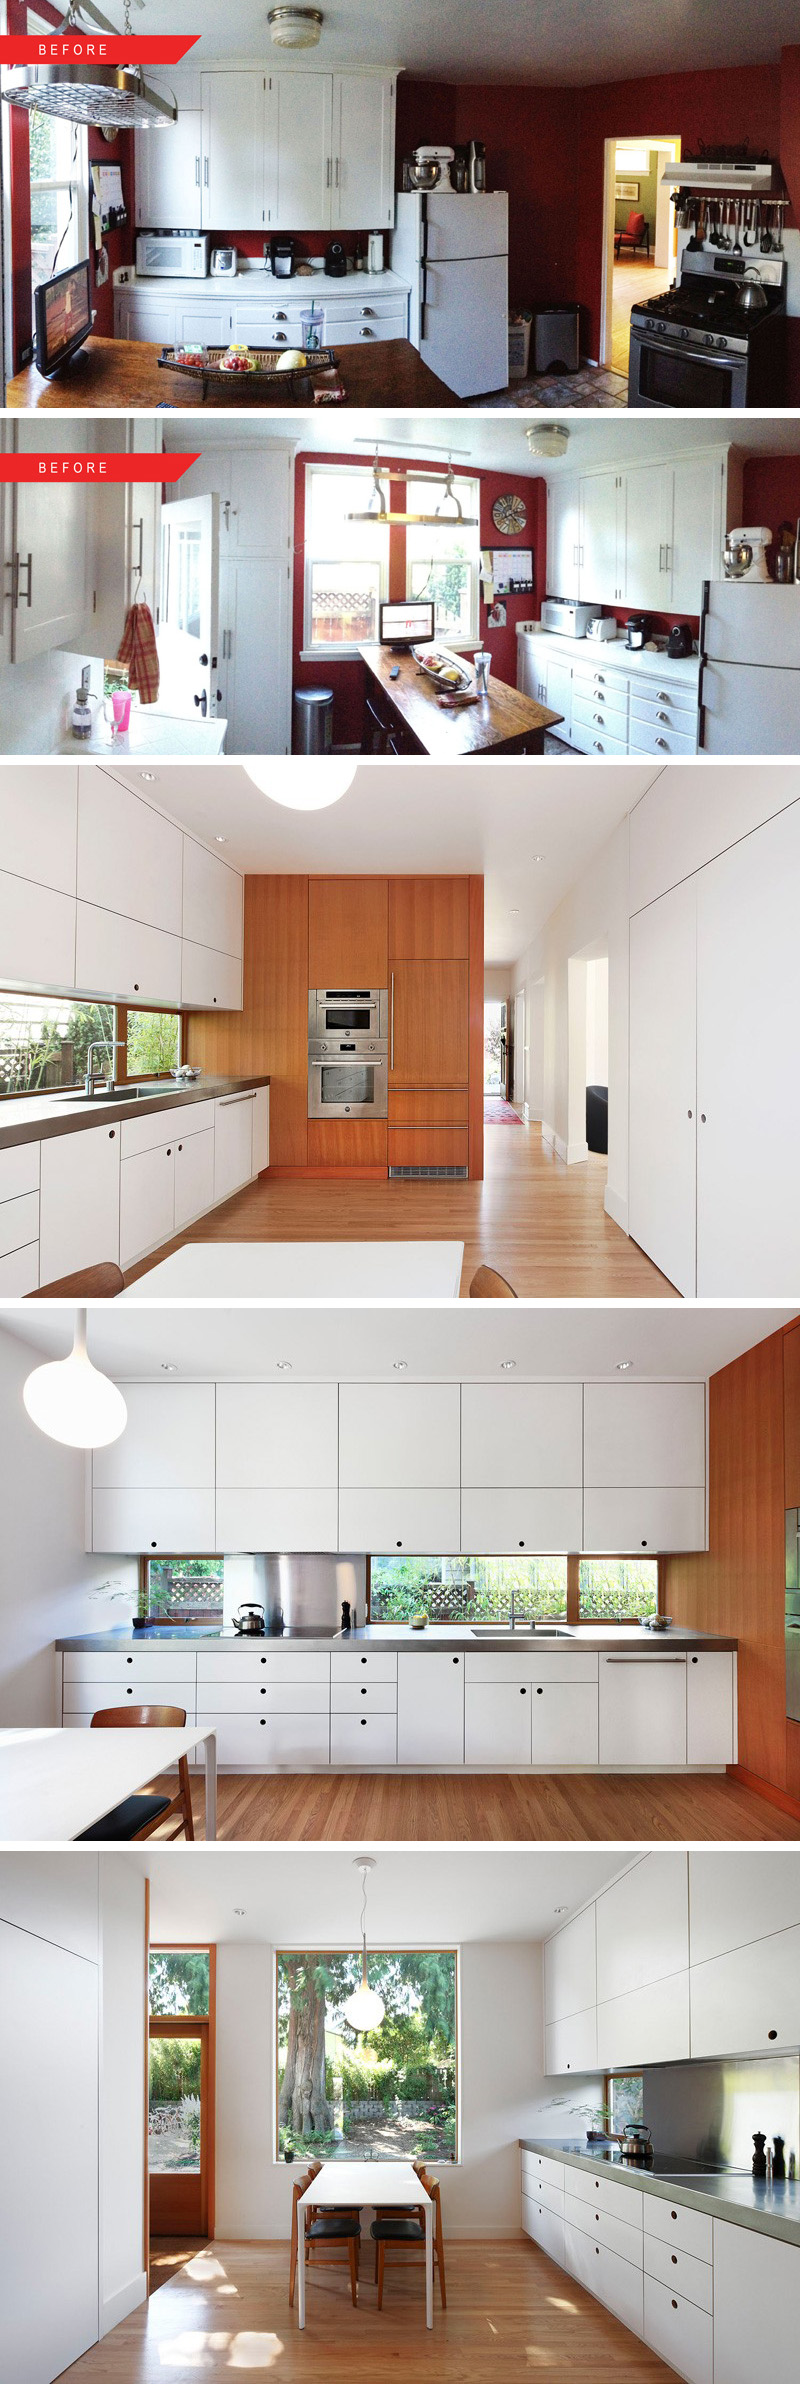 This kitchen was transformed from a dark tight space into a bright open one by adding a letterbox window, changing the layout of this modern kitchen, and adding built in appliances with an integrated fridge into a wood panelled wall